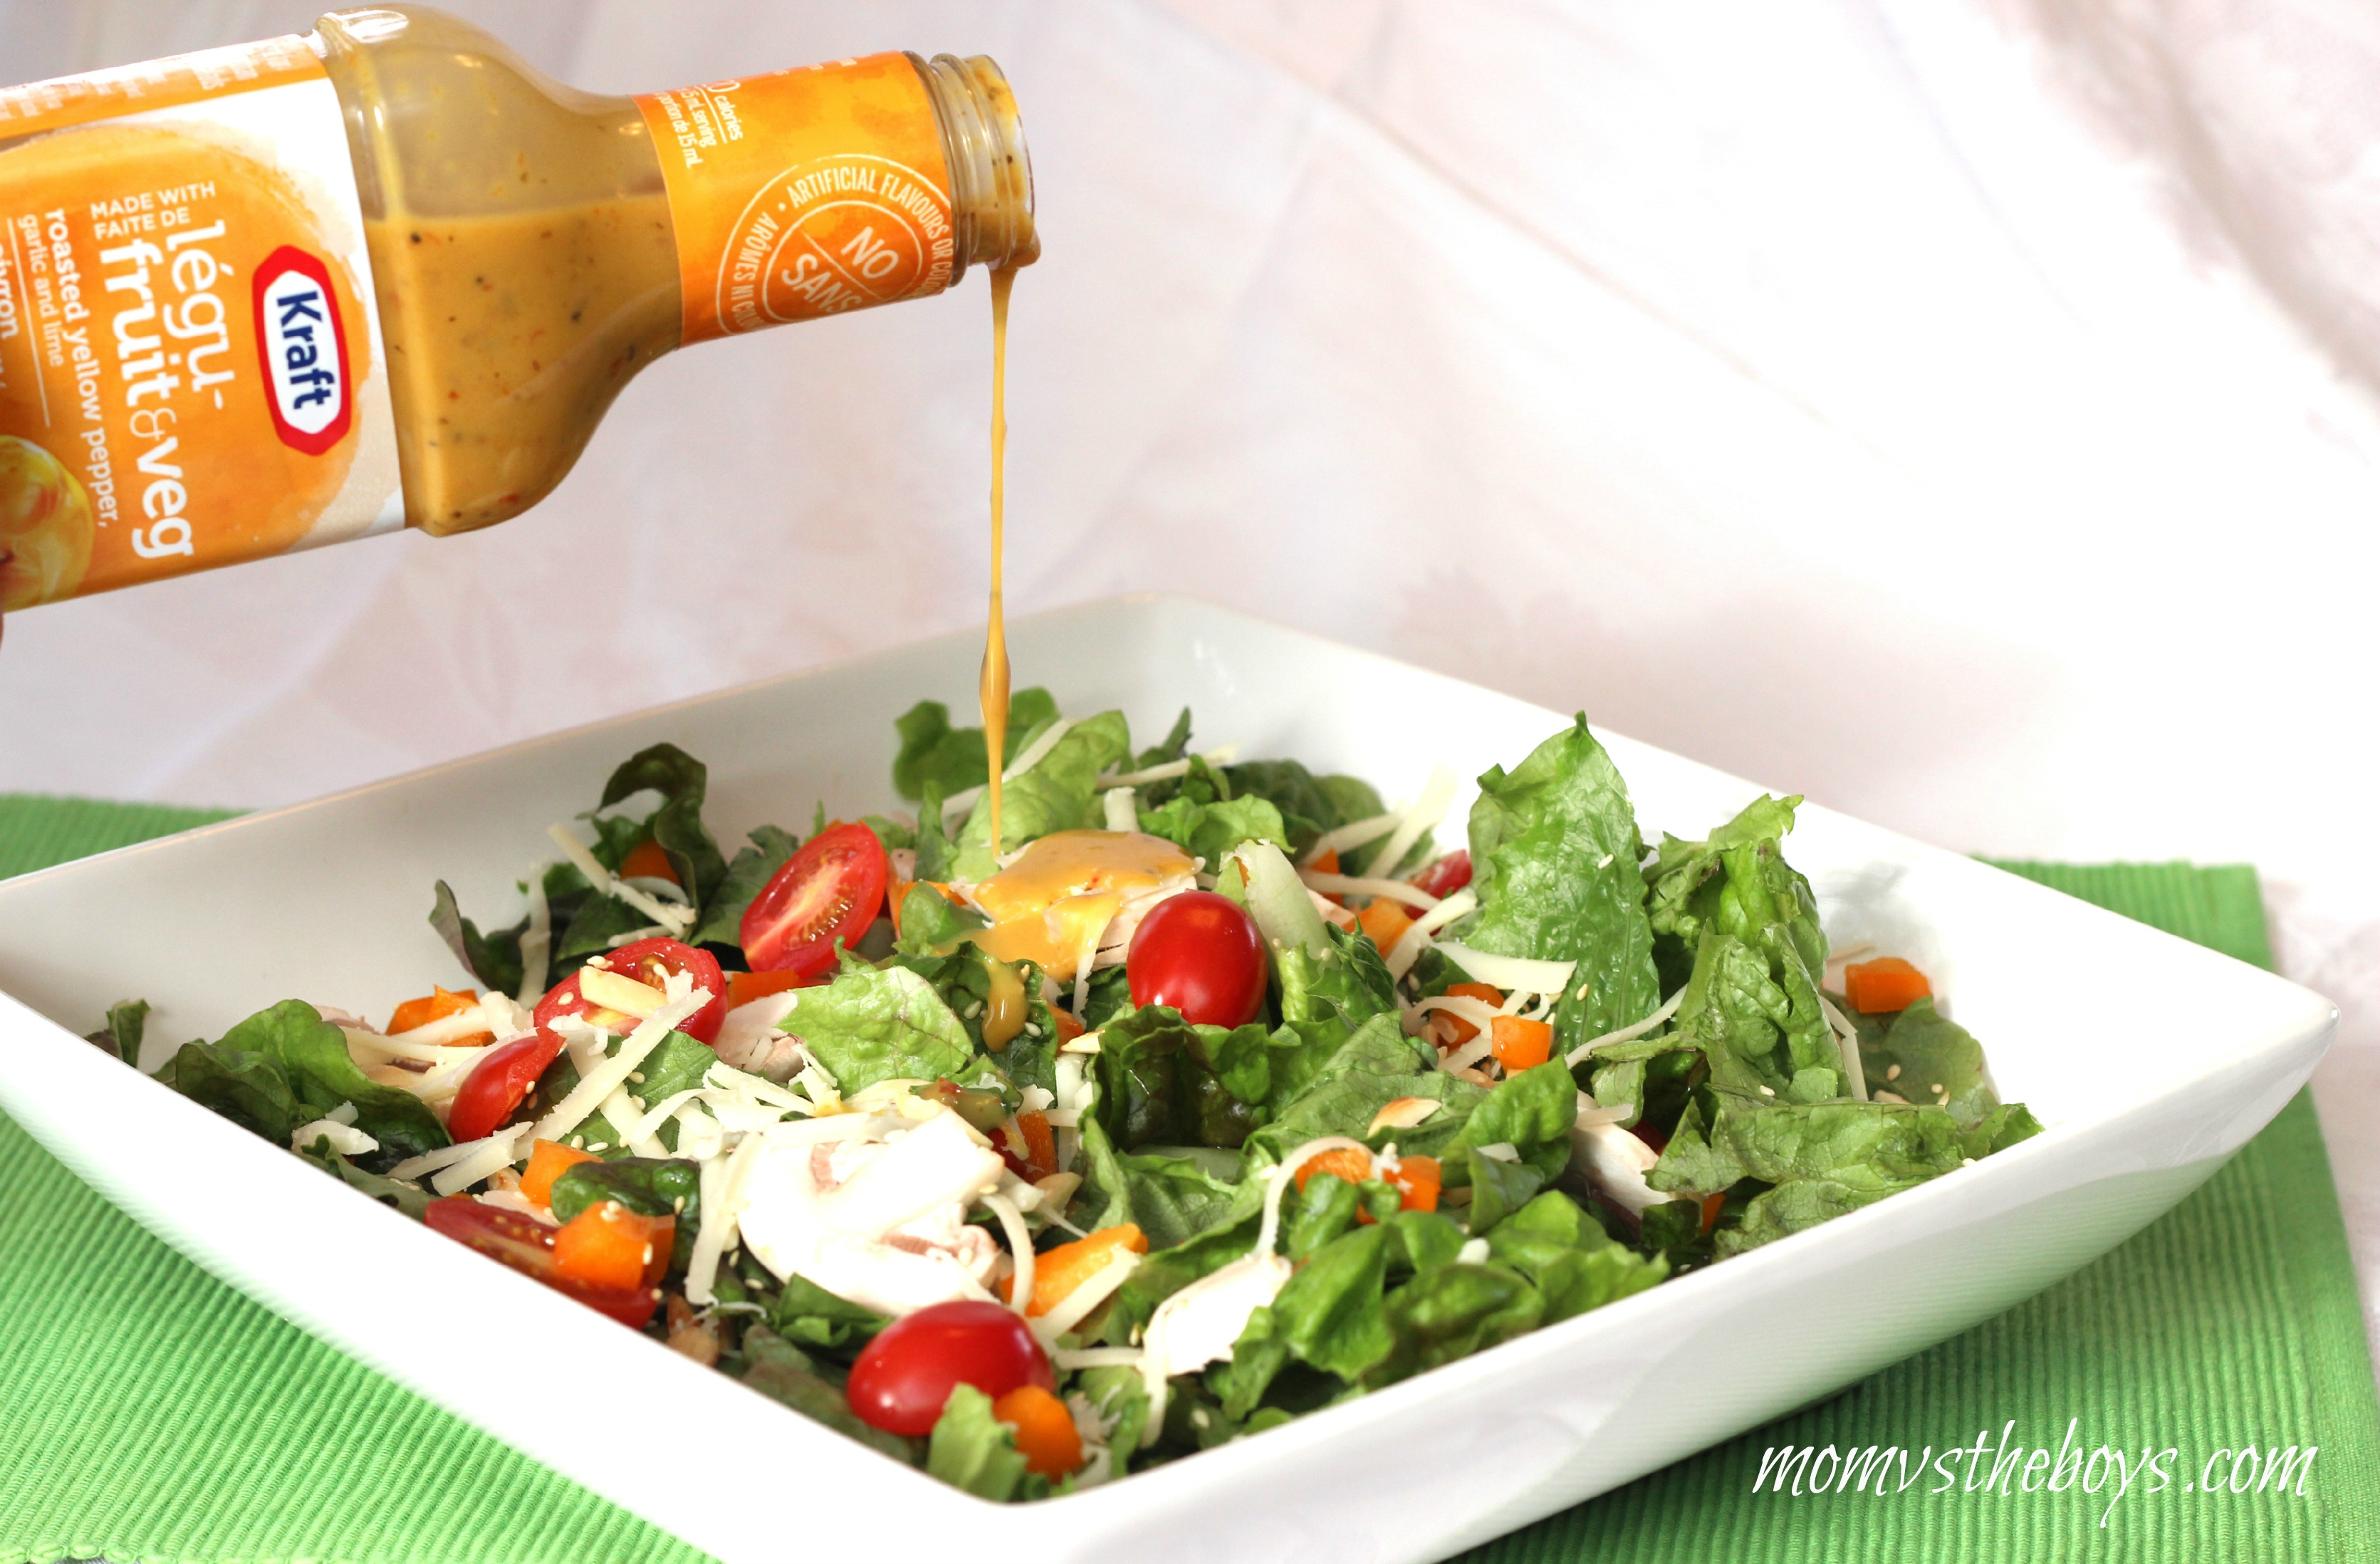 salad dressings The dressing makes the salad make your greens sing with these recipes for blue cheese, ranch, caesar, or green goddess dressing balsamic, red-wine, or citrus vinaigrette and many more.